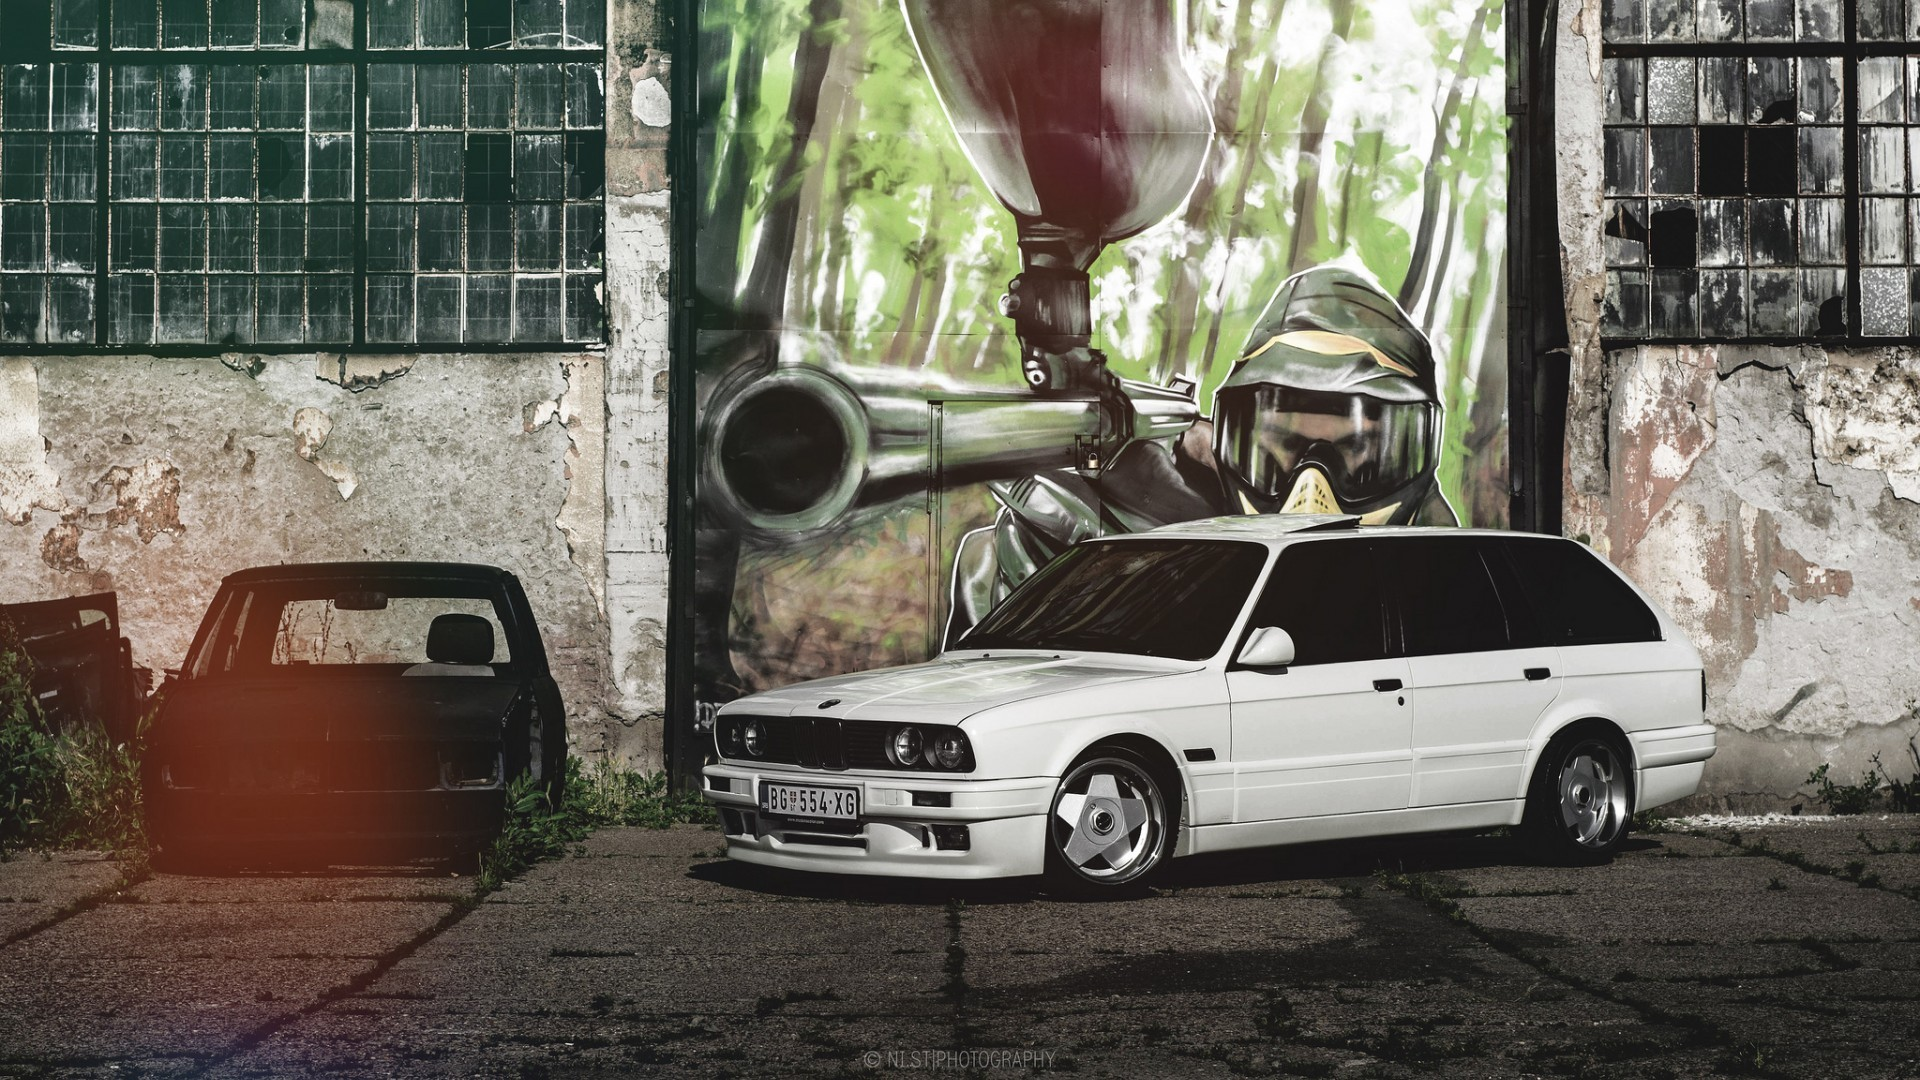 BMW E30 Vintage, HD Cars, 4k Wallpapers, Images ...